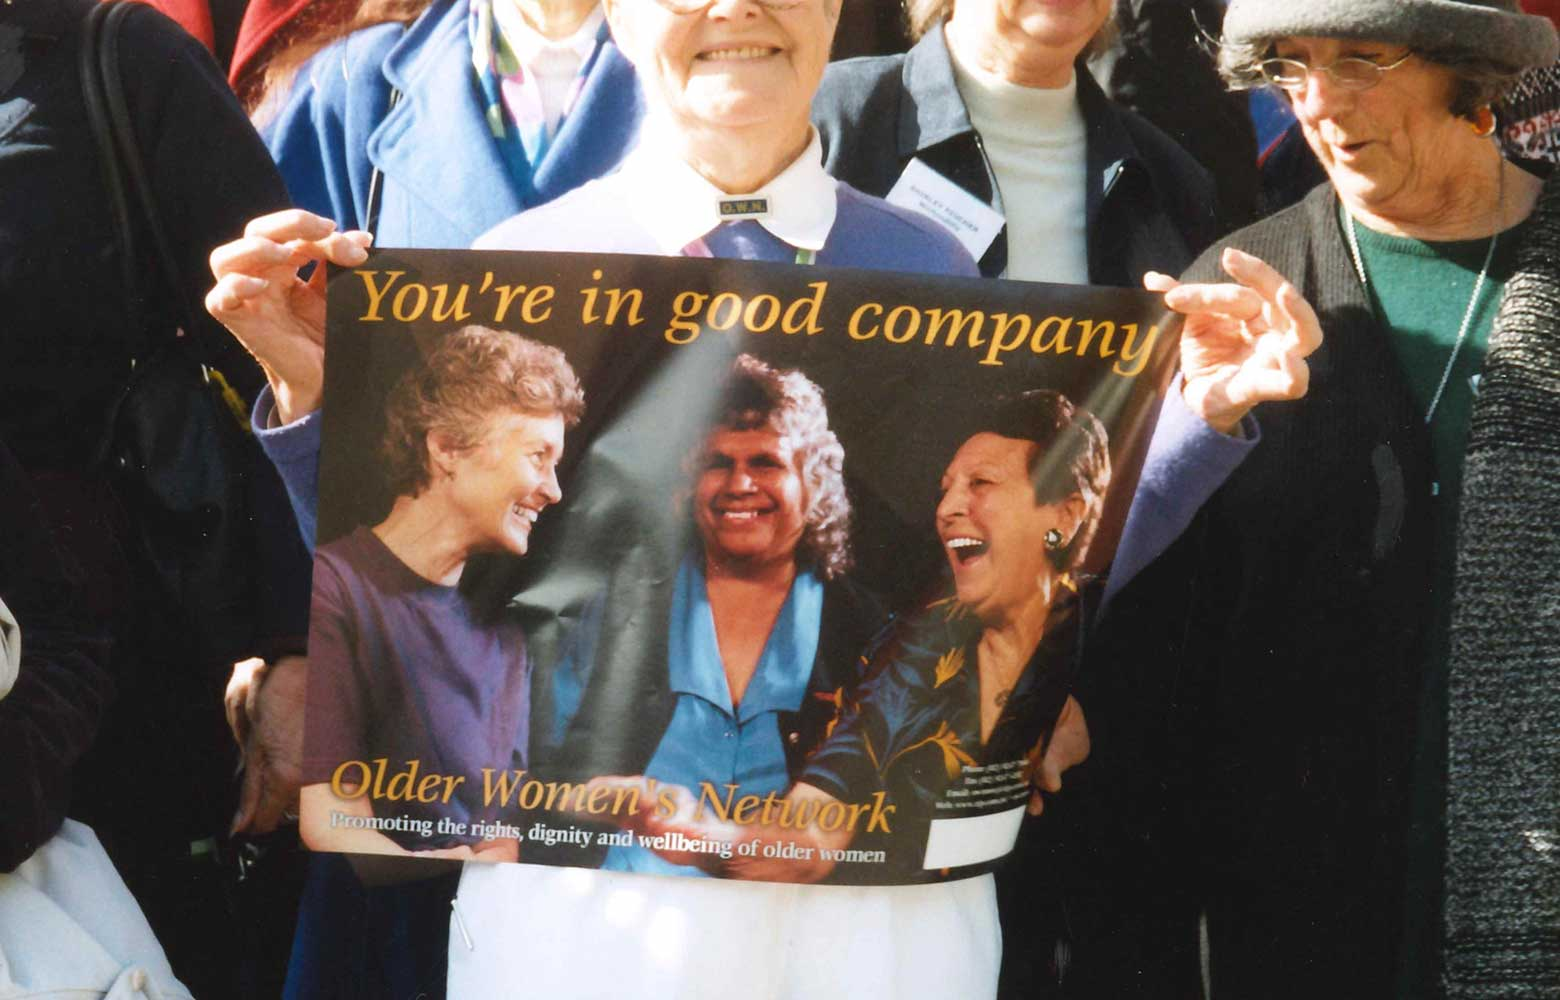 "1996 - an older woman holding poster of 3 women with the title ""You're in good company. Older Women's Network, Promoting the rights, dignity and wellbeing of older women"""